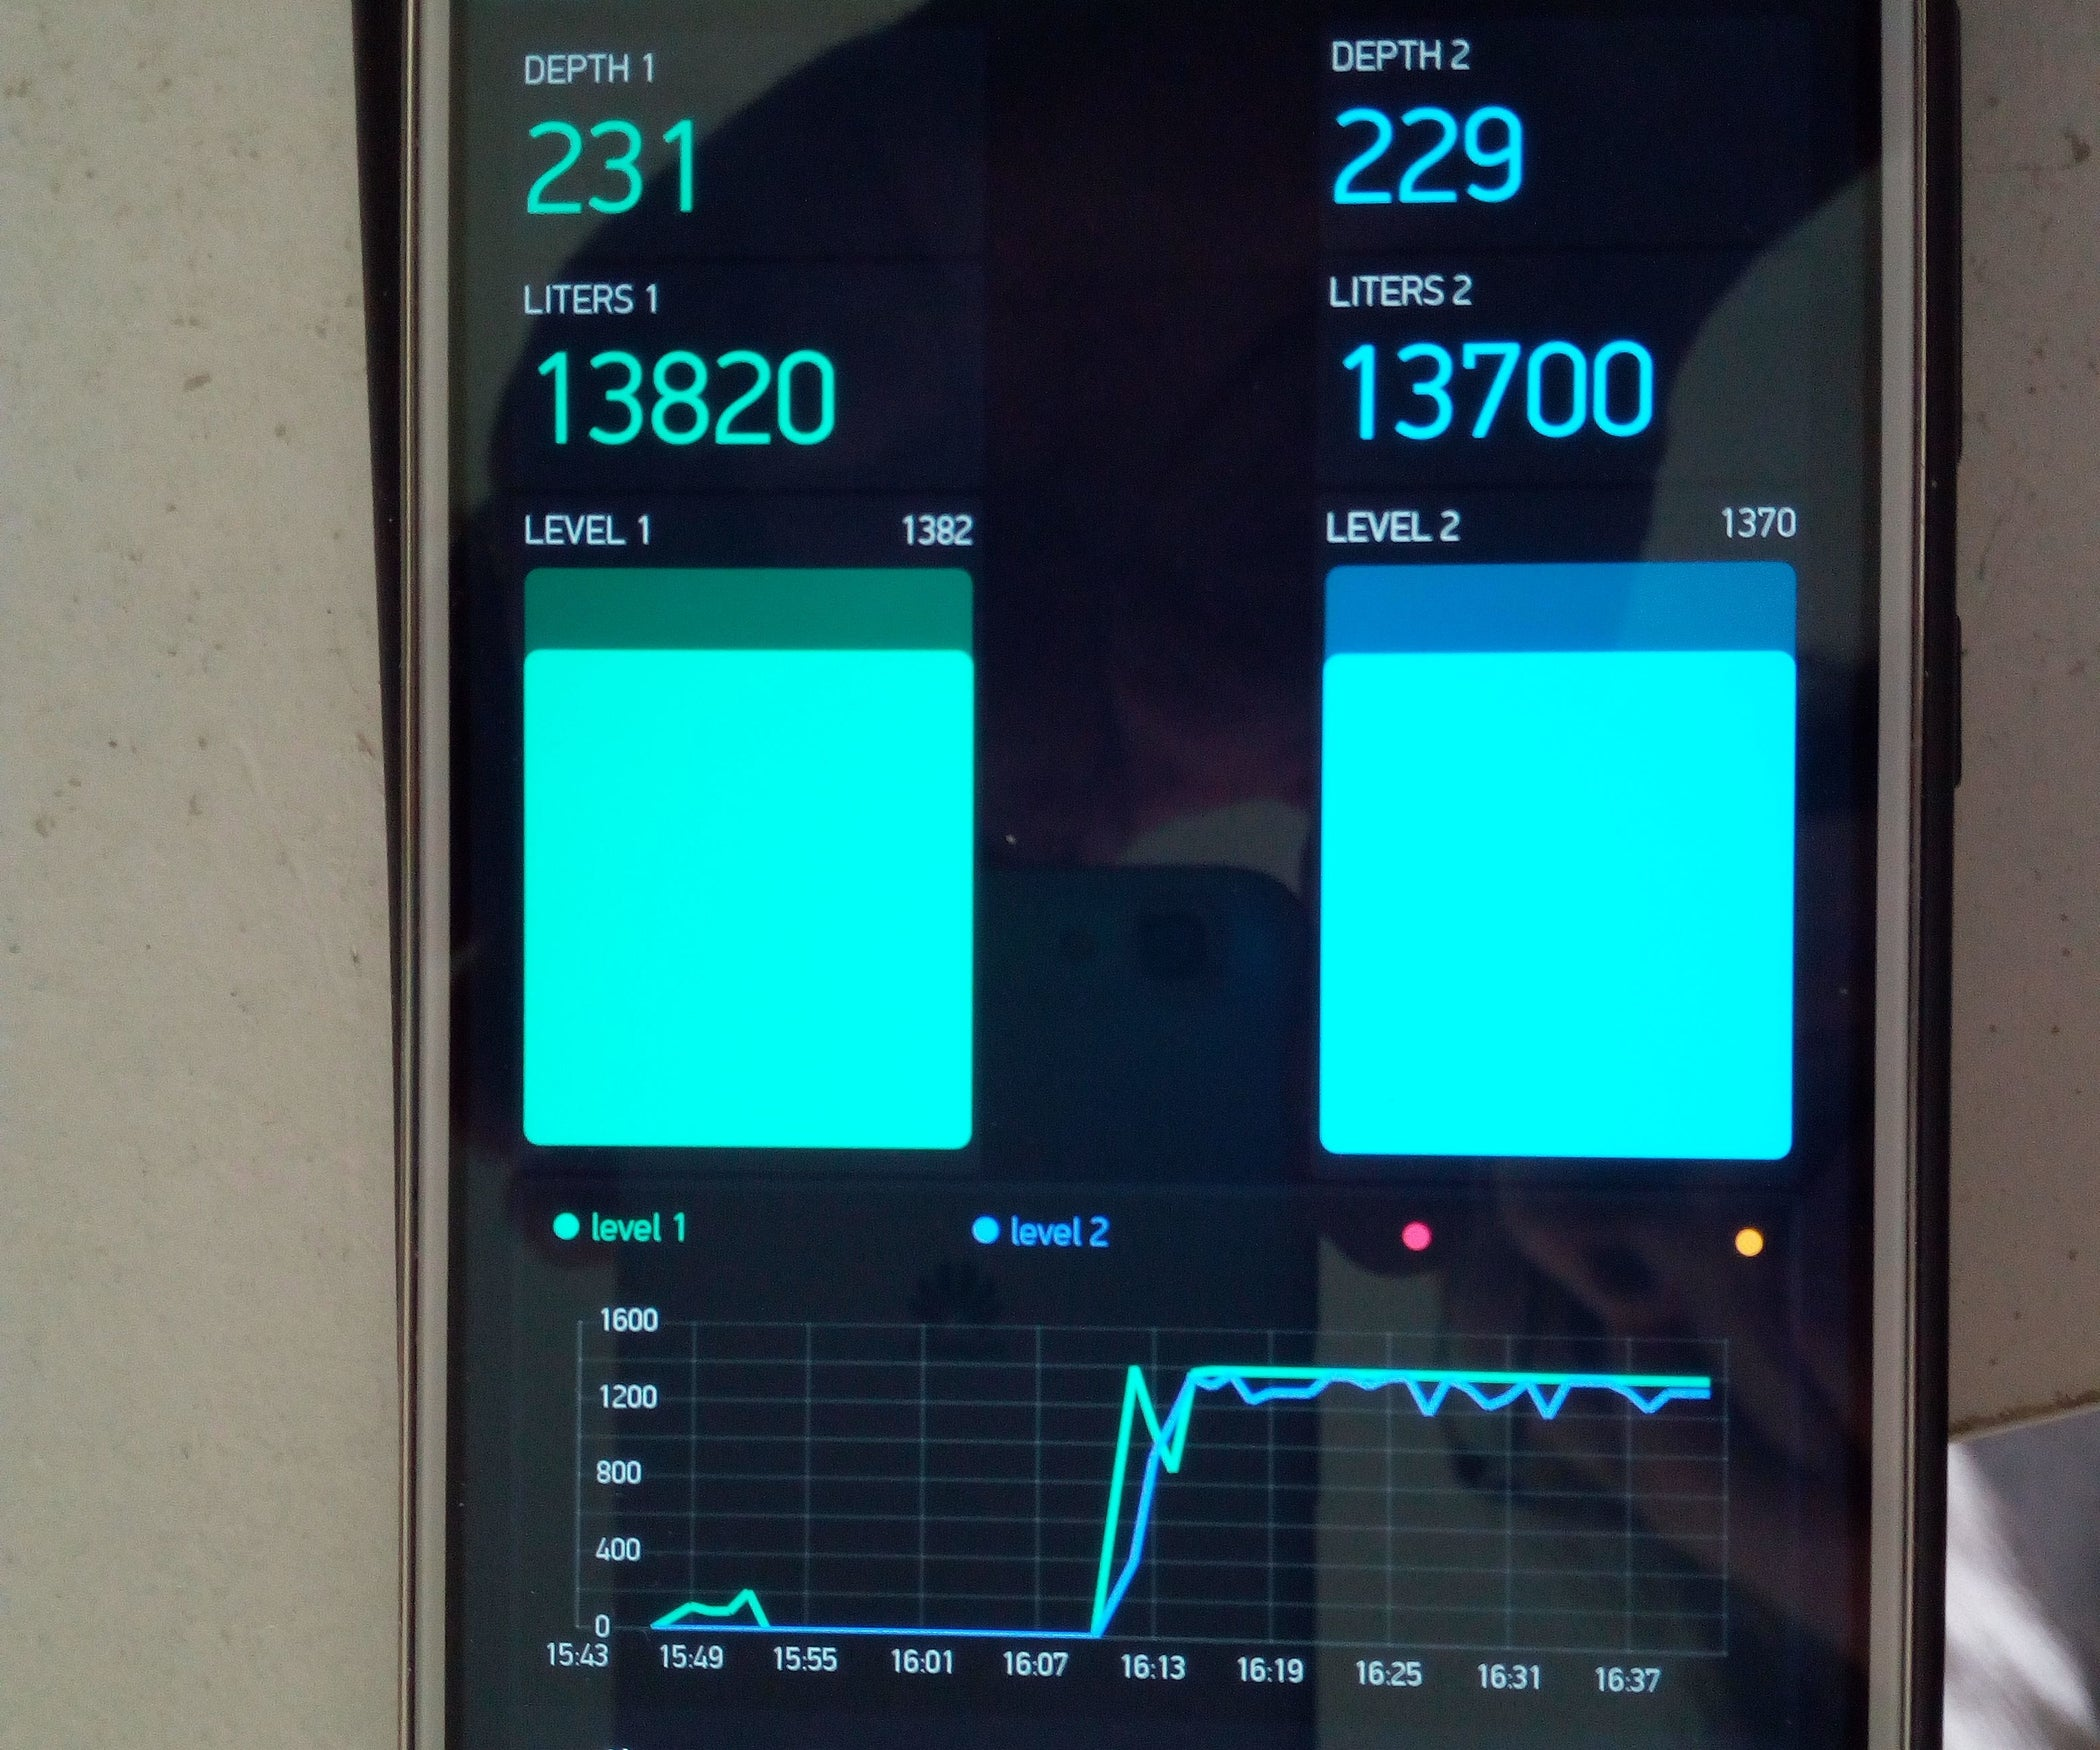 Water Tank Levels By Wifi On Your Phone 9 Steps With Pictures Waterproof Mobile Circuit Boards